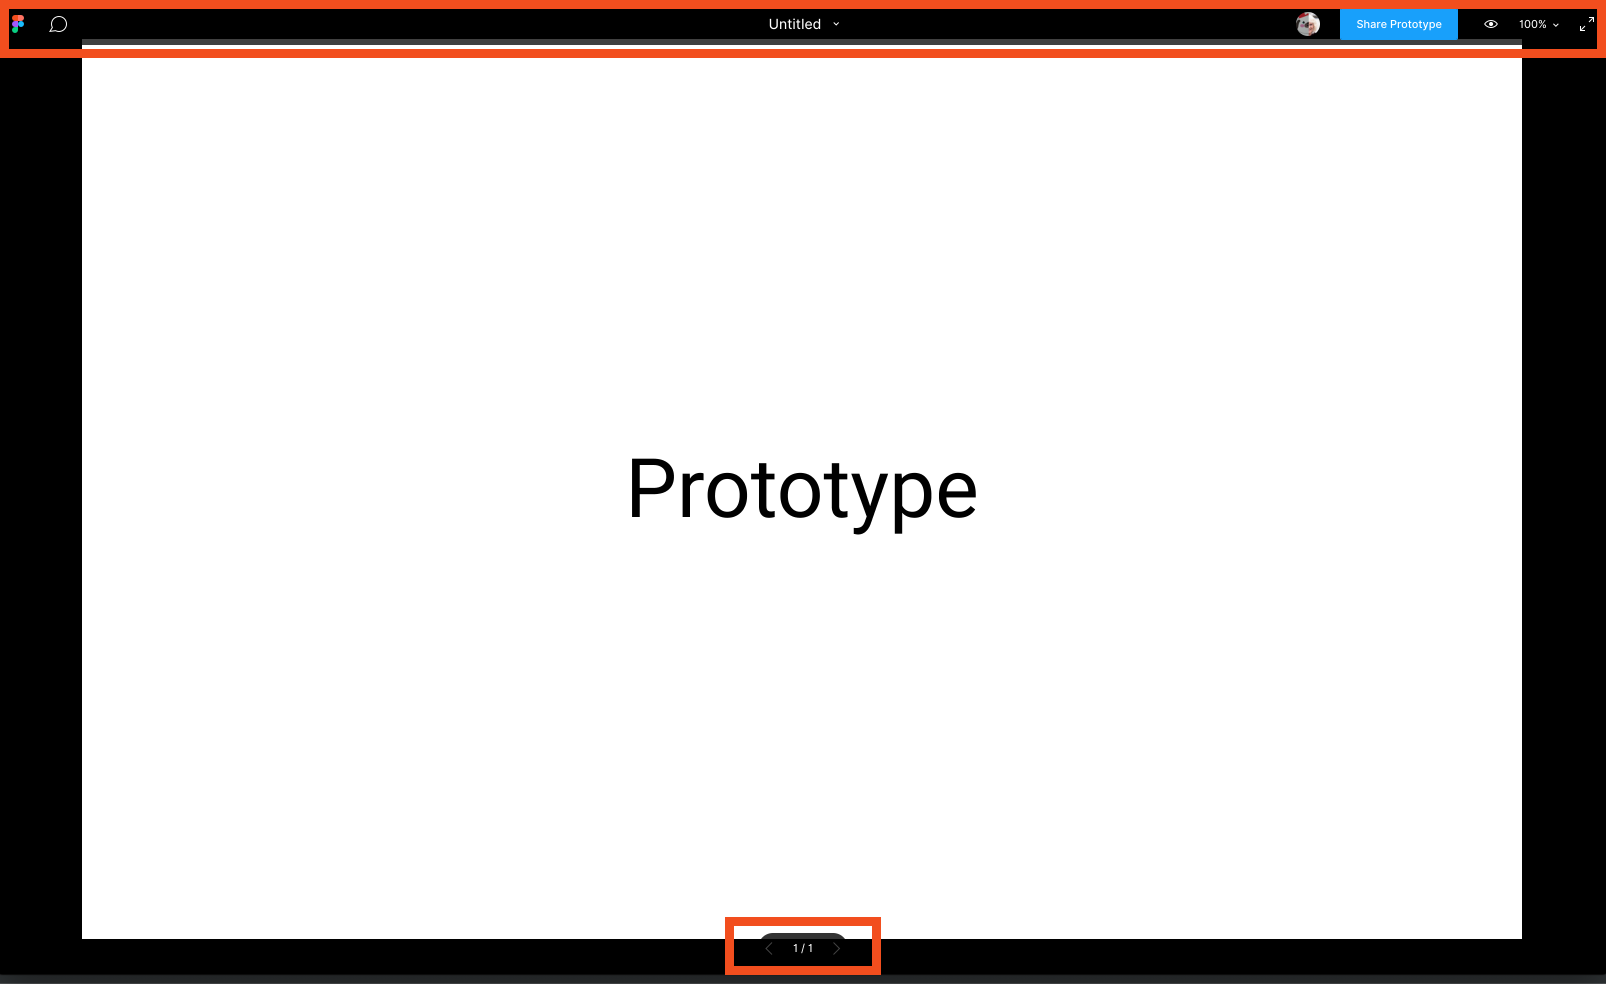 Figma on prototype mode showing the overlay